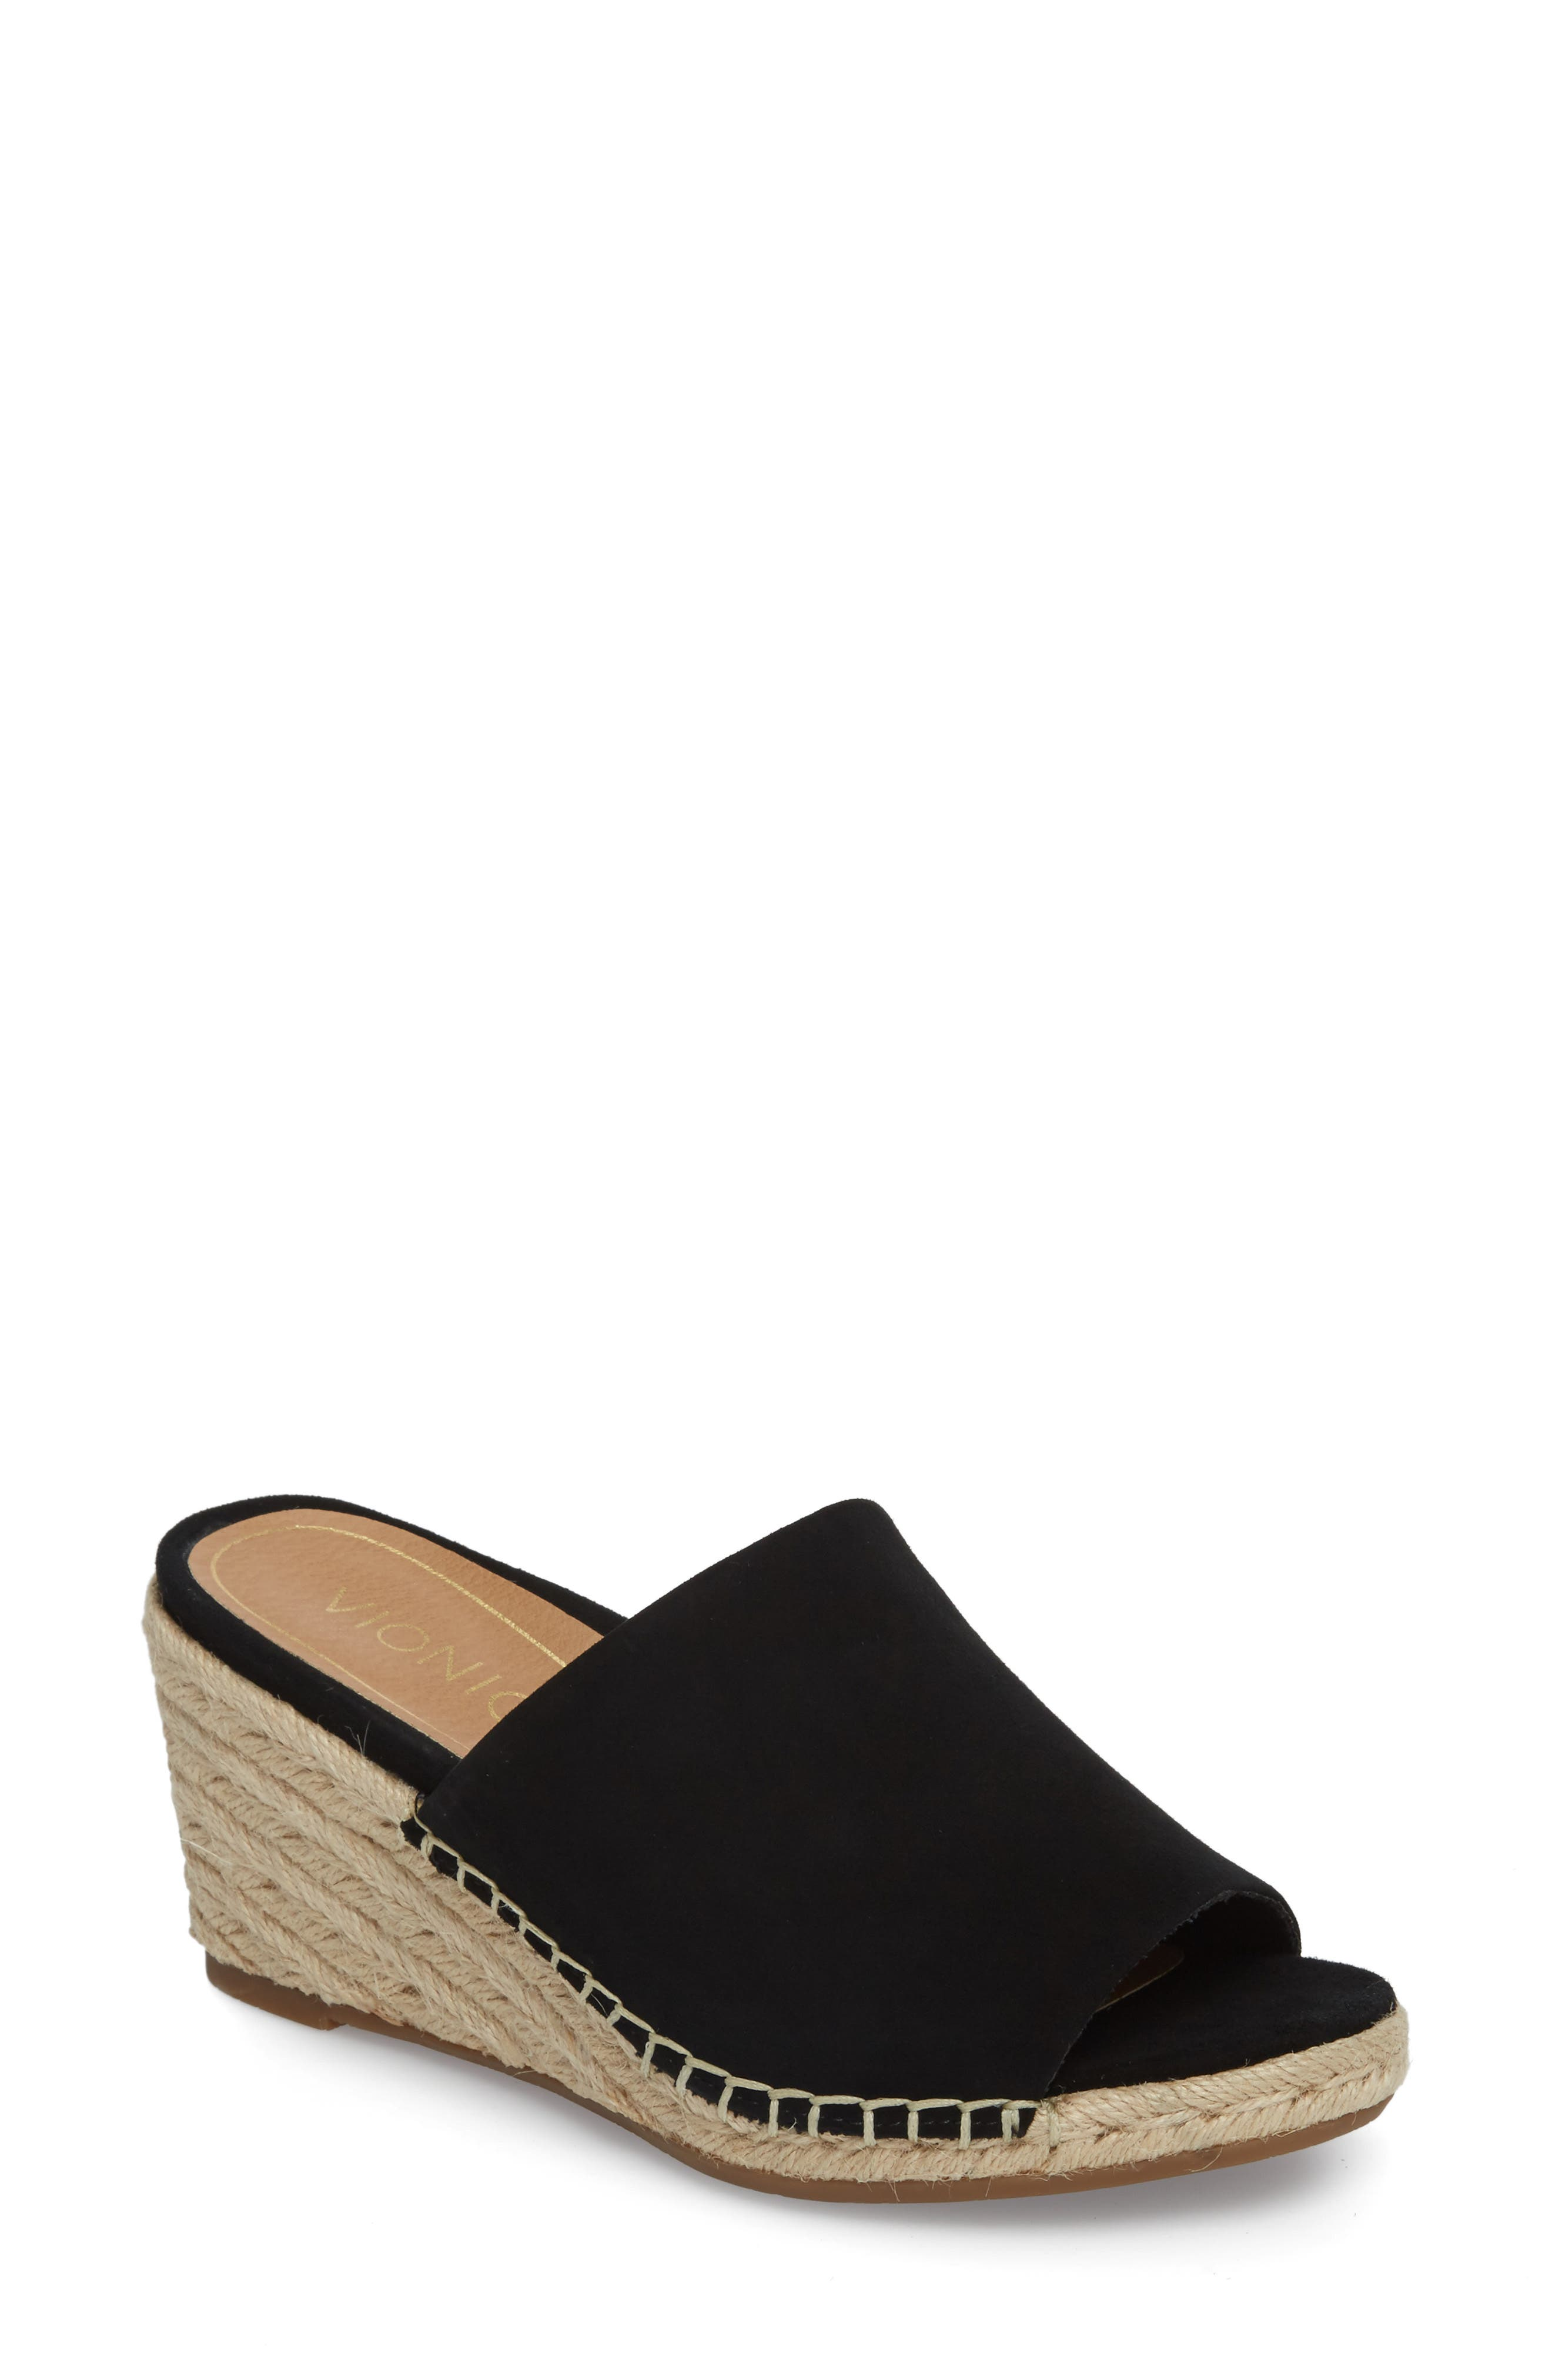 Kadyn Espadrille Wedge Sandal,                             Main thumbnail 1, color,                             BLACK SUEDE